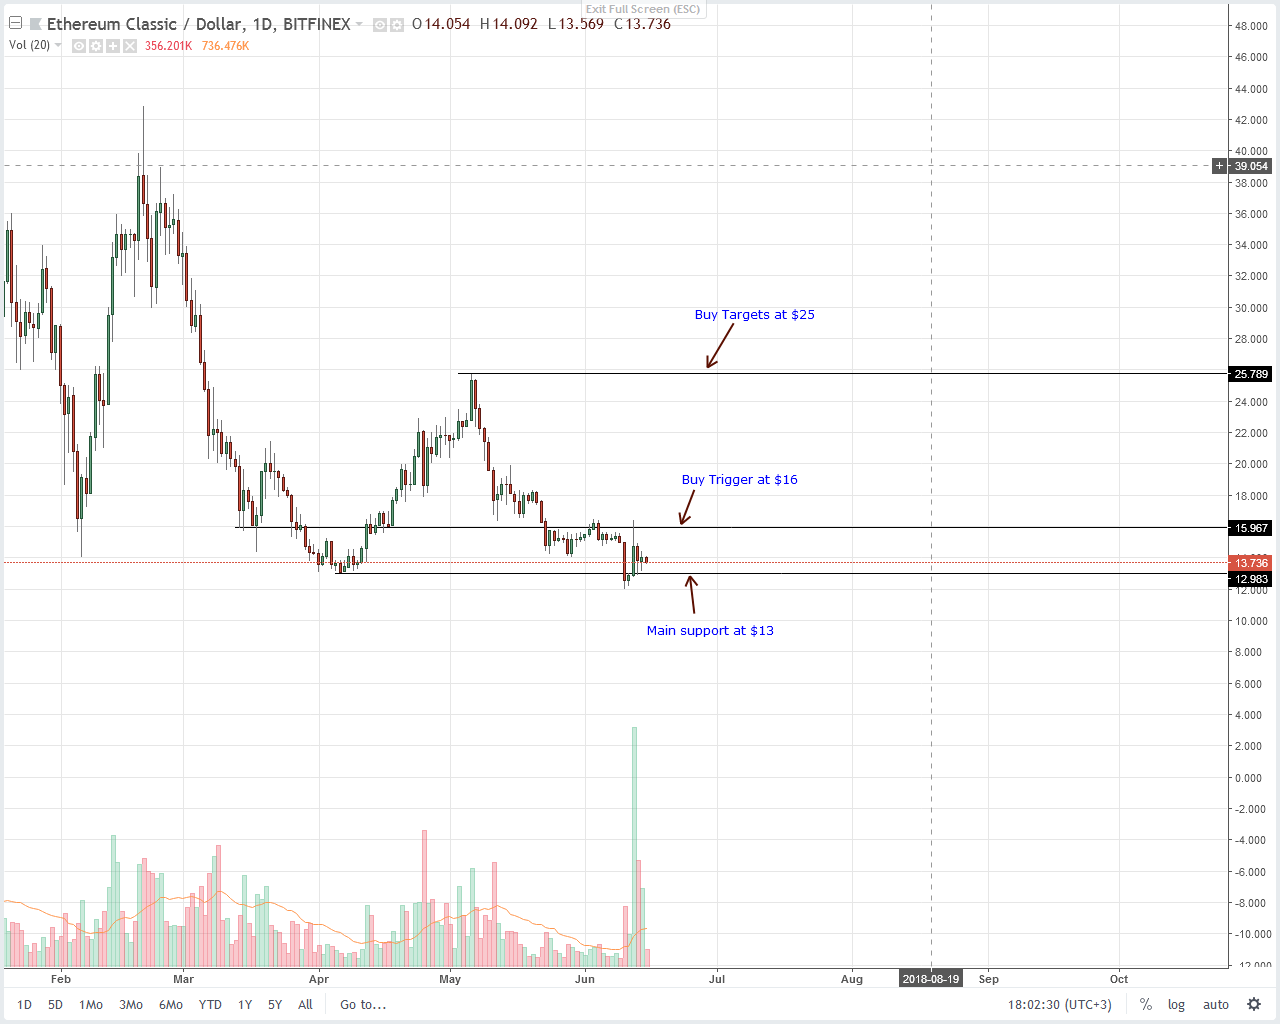 Ethereum Classic (ETC) Technical Analysis